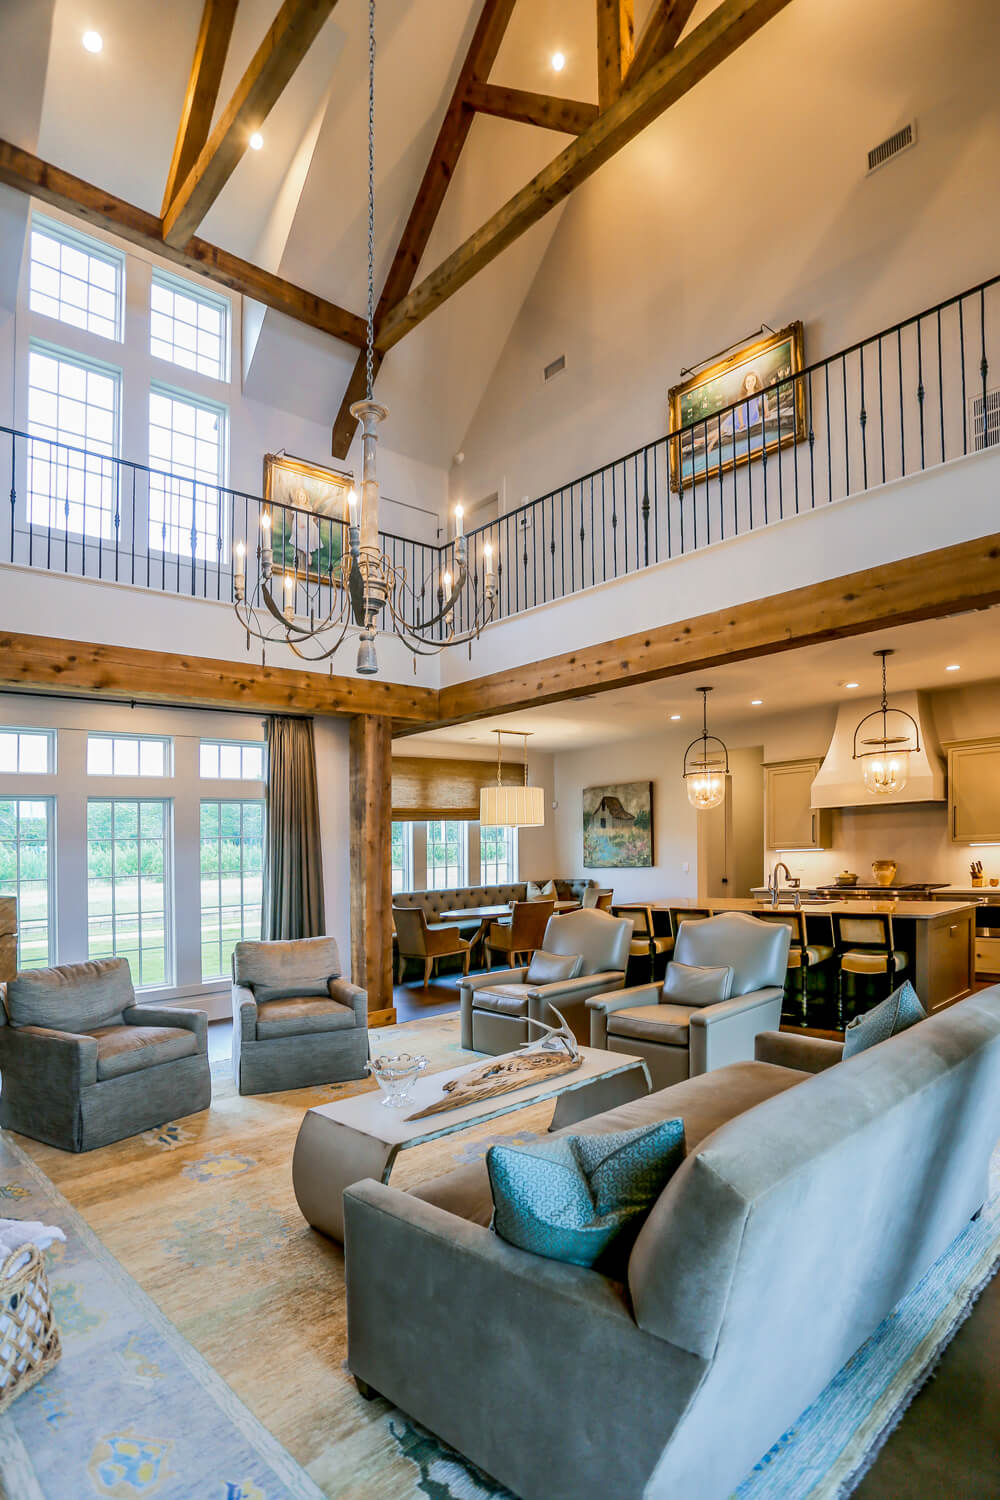 Private Residence - Living Room with Trusses - Designed by Foshee Architecture